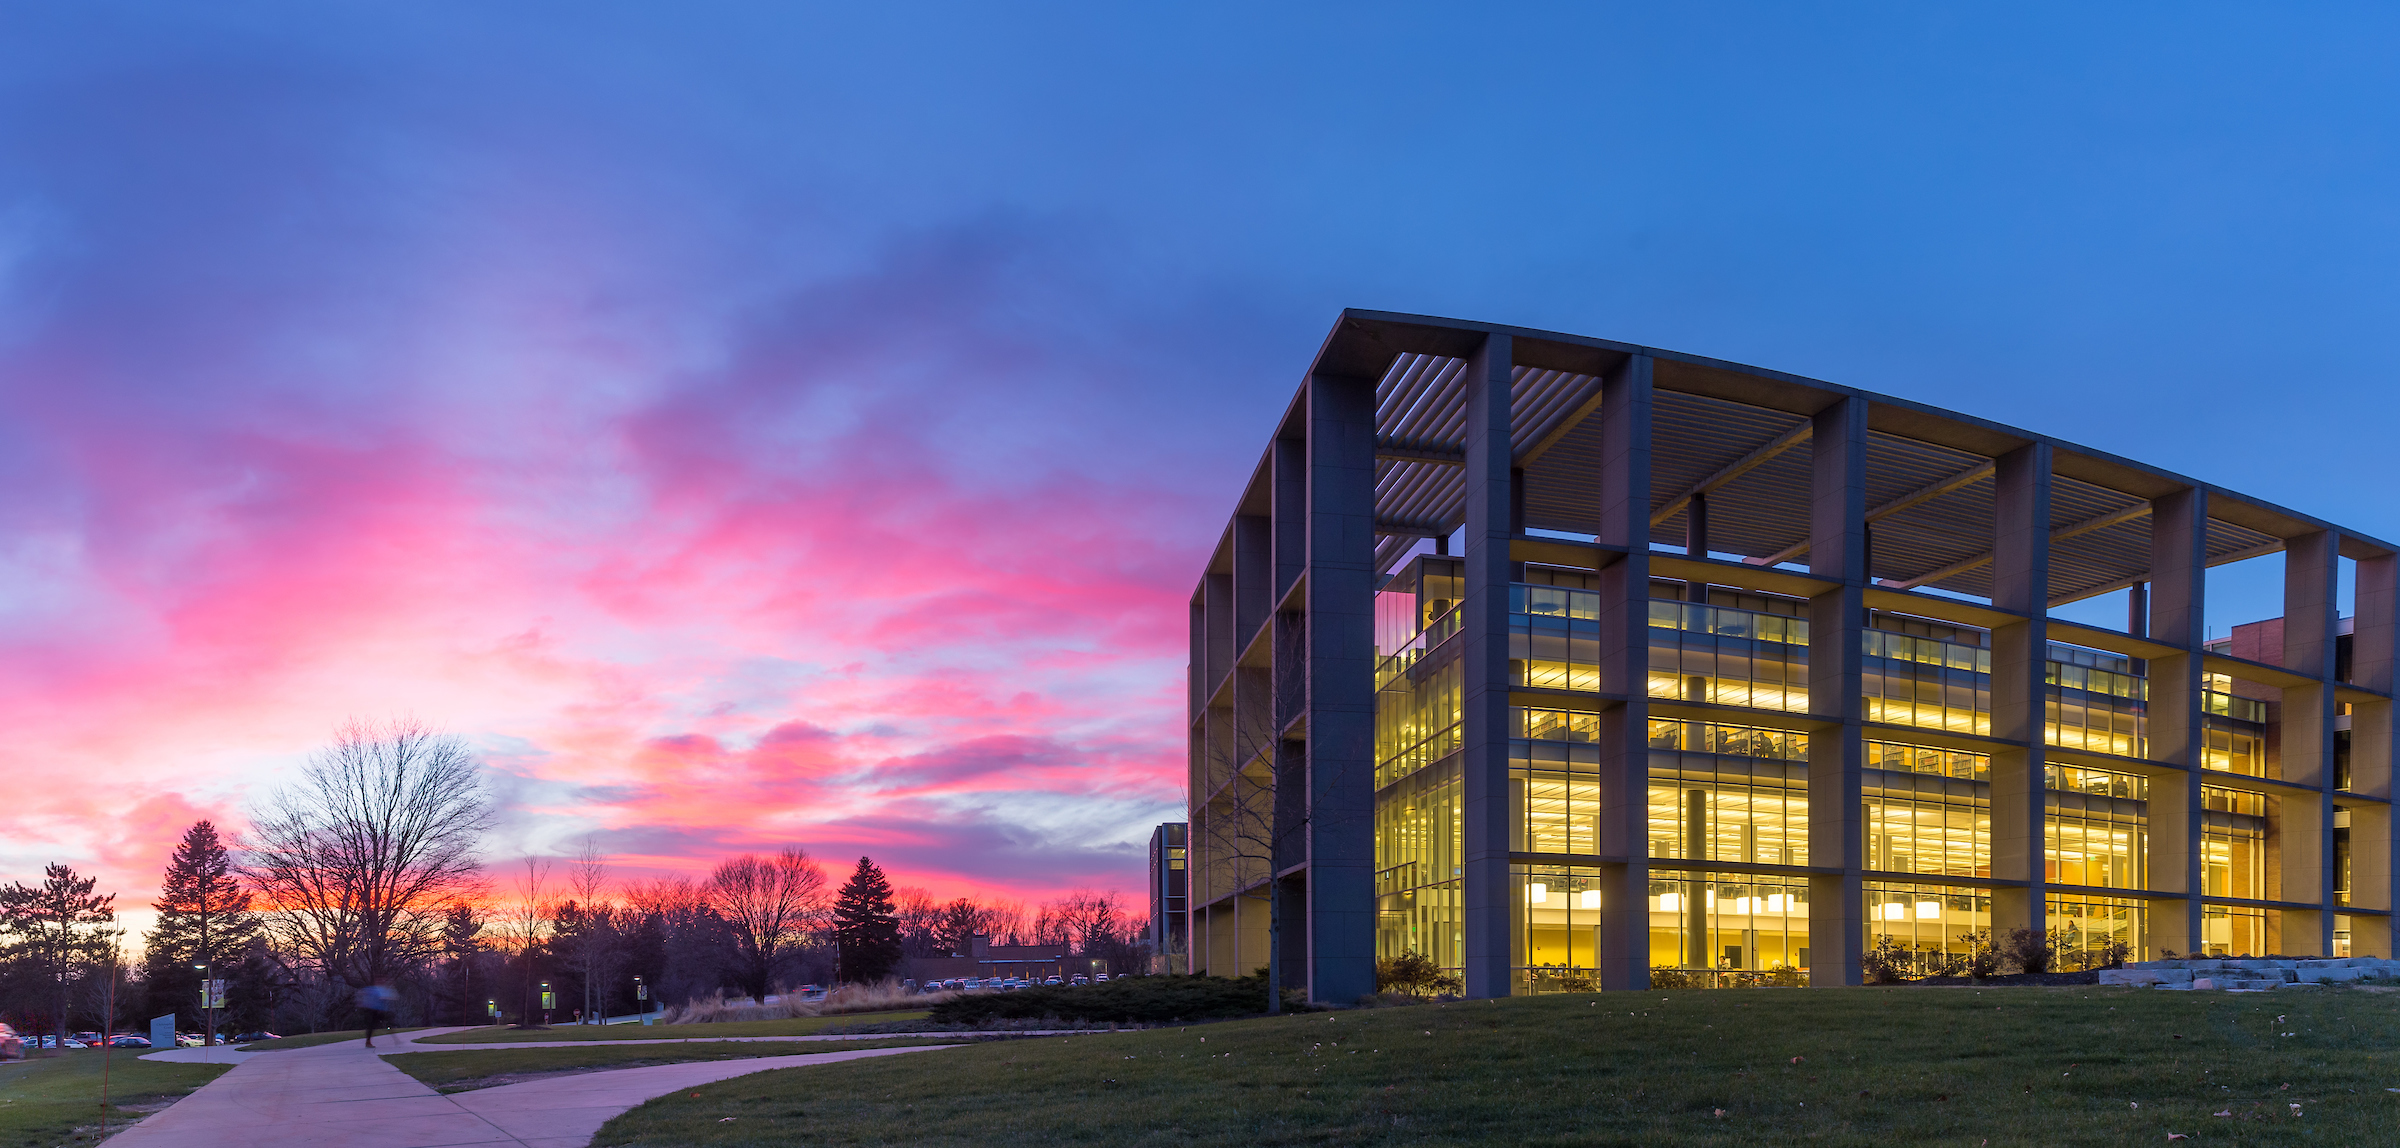 Library at Sunset